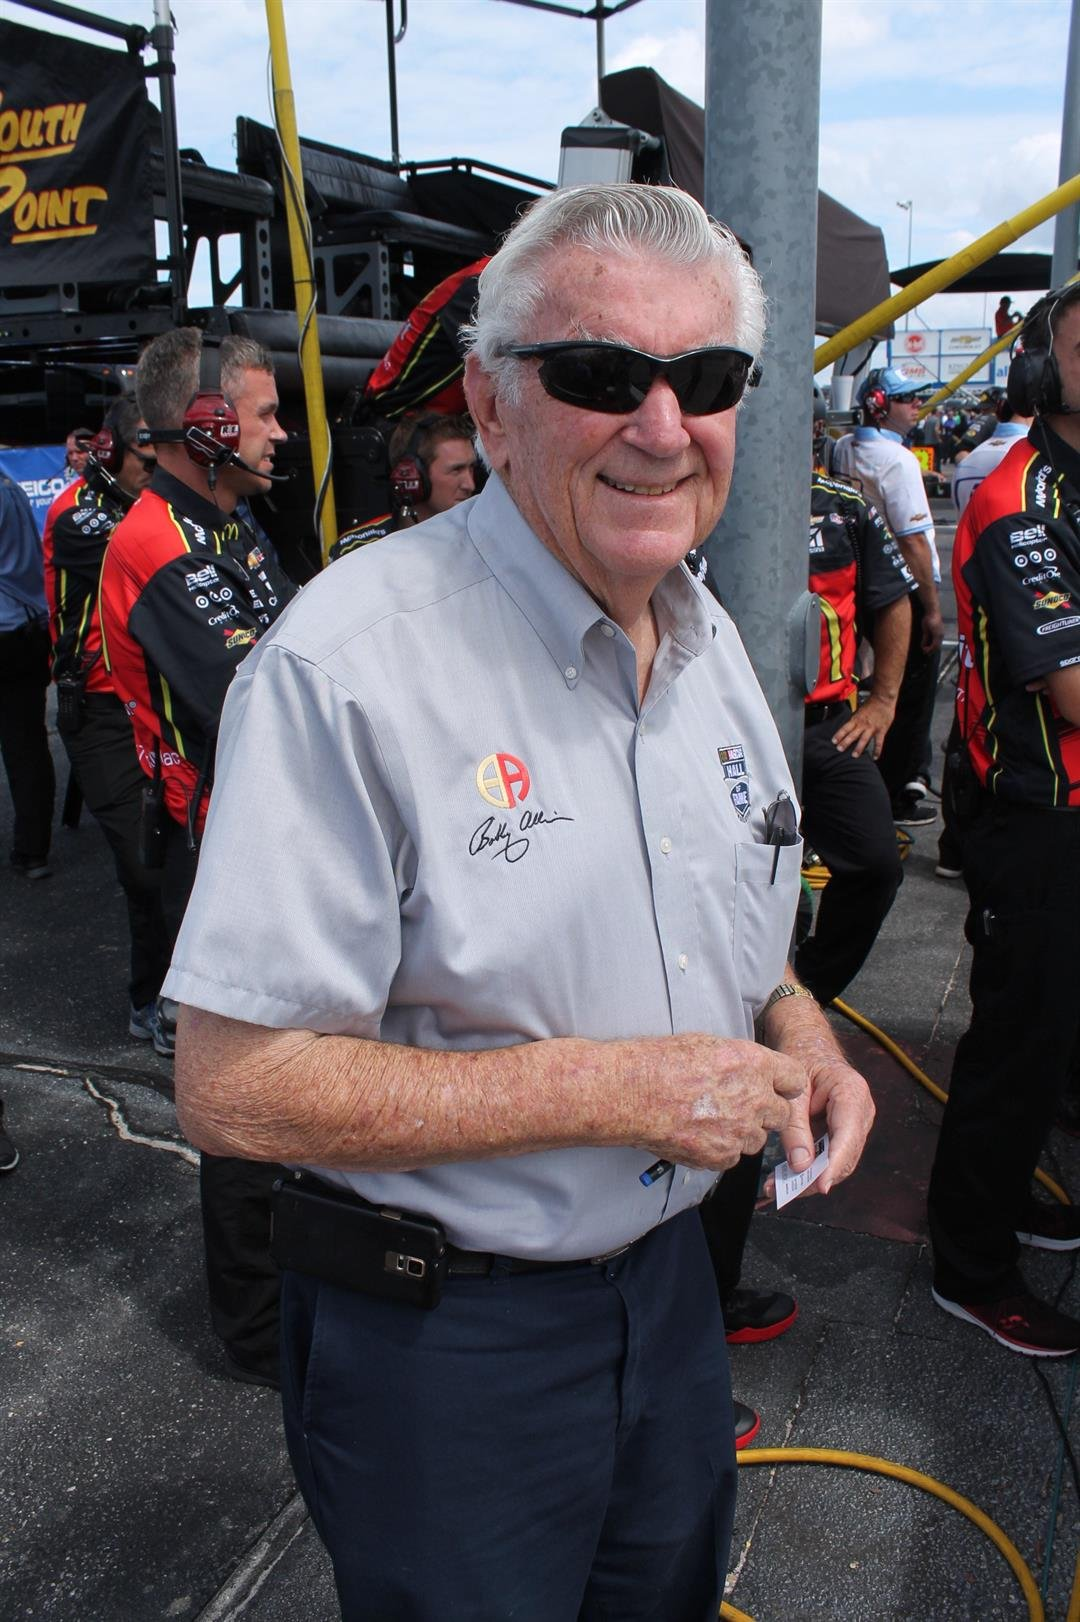 1983 NASCAR Champion Bobby Allison,  will be in attendance to honor his brother Donnie Allison, who is being inducted into the Hall of Fame. Darlington 2017. (source: Doug Allen)